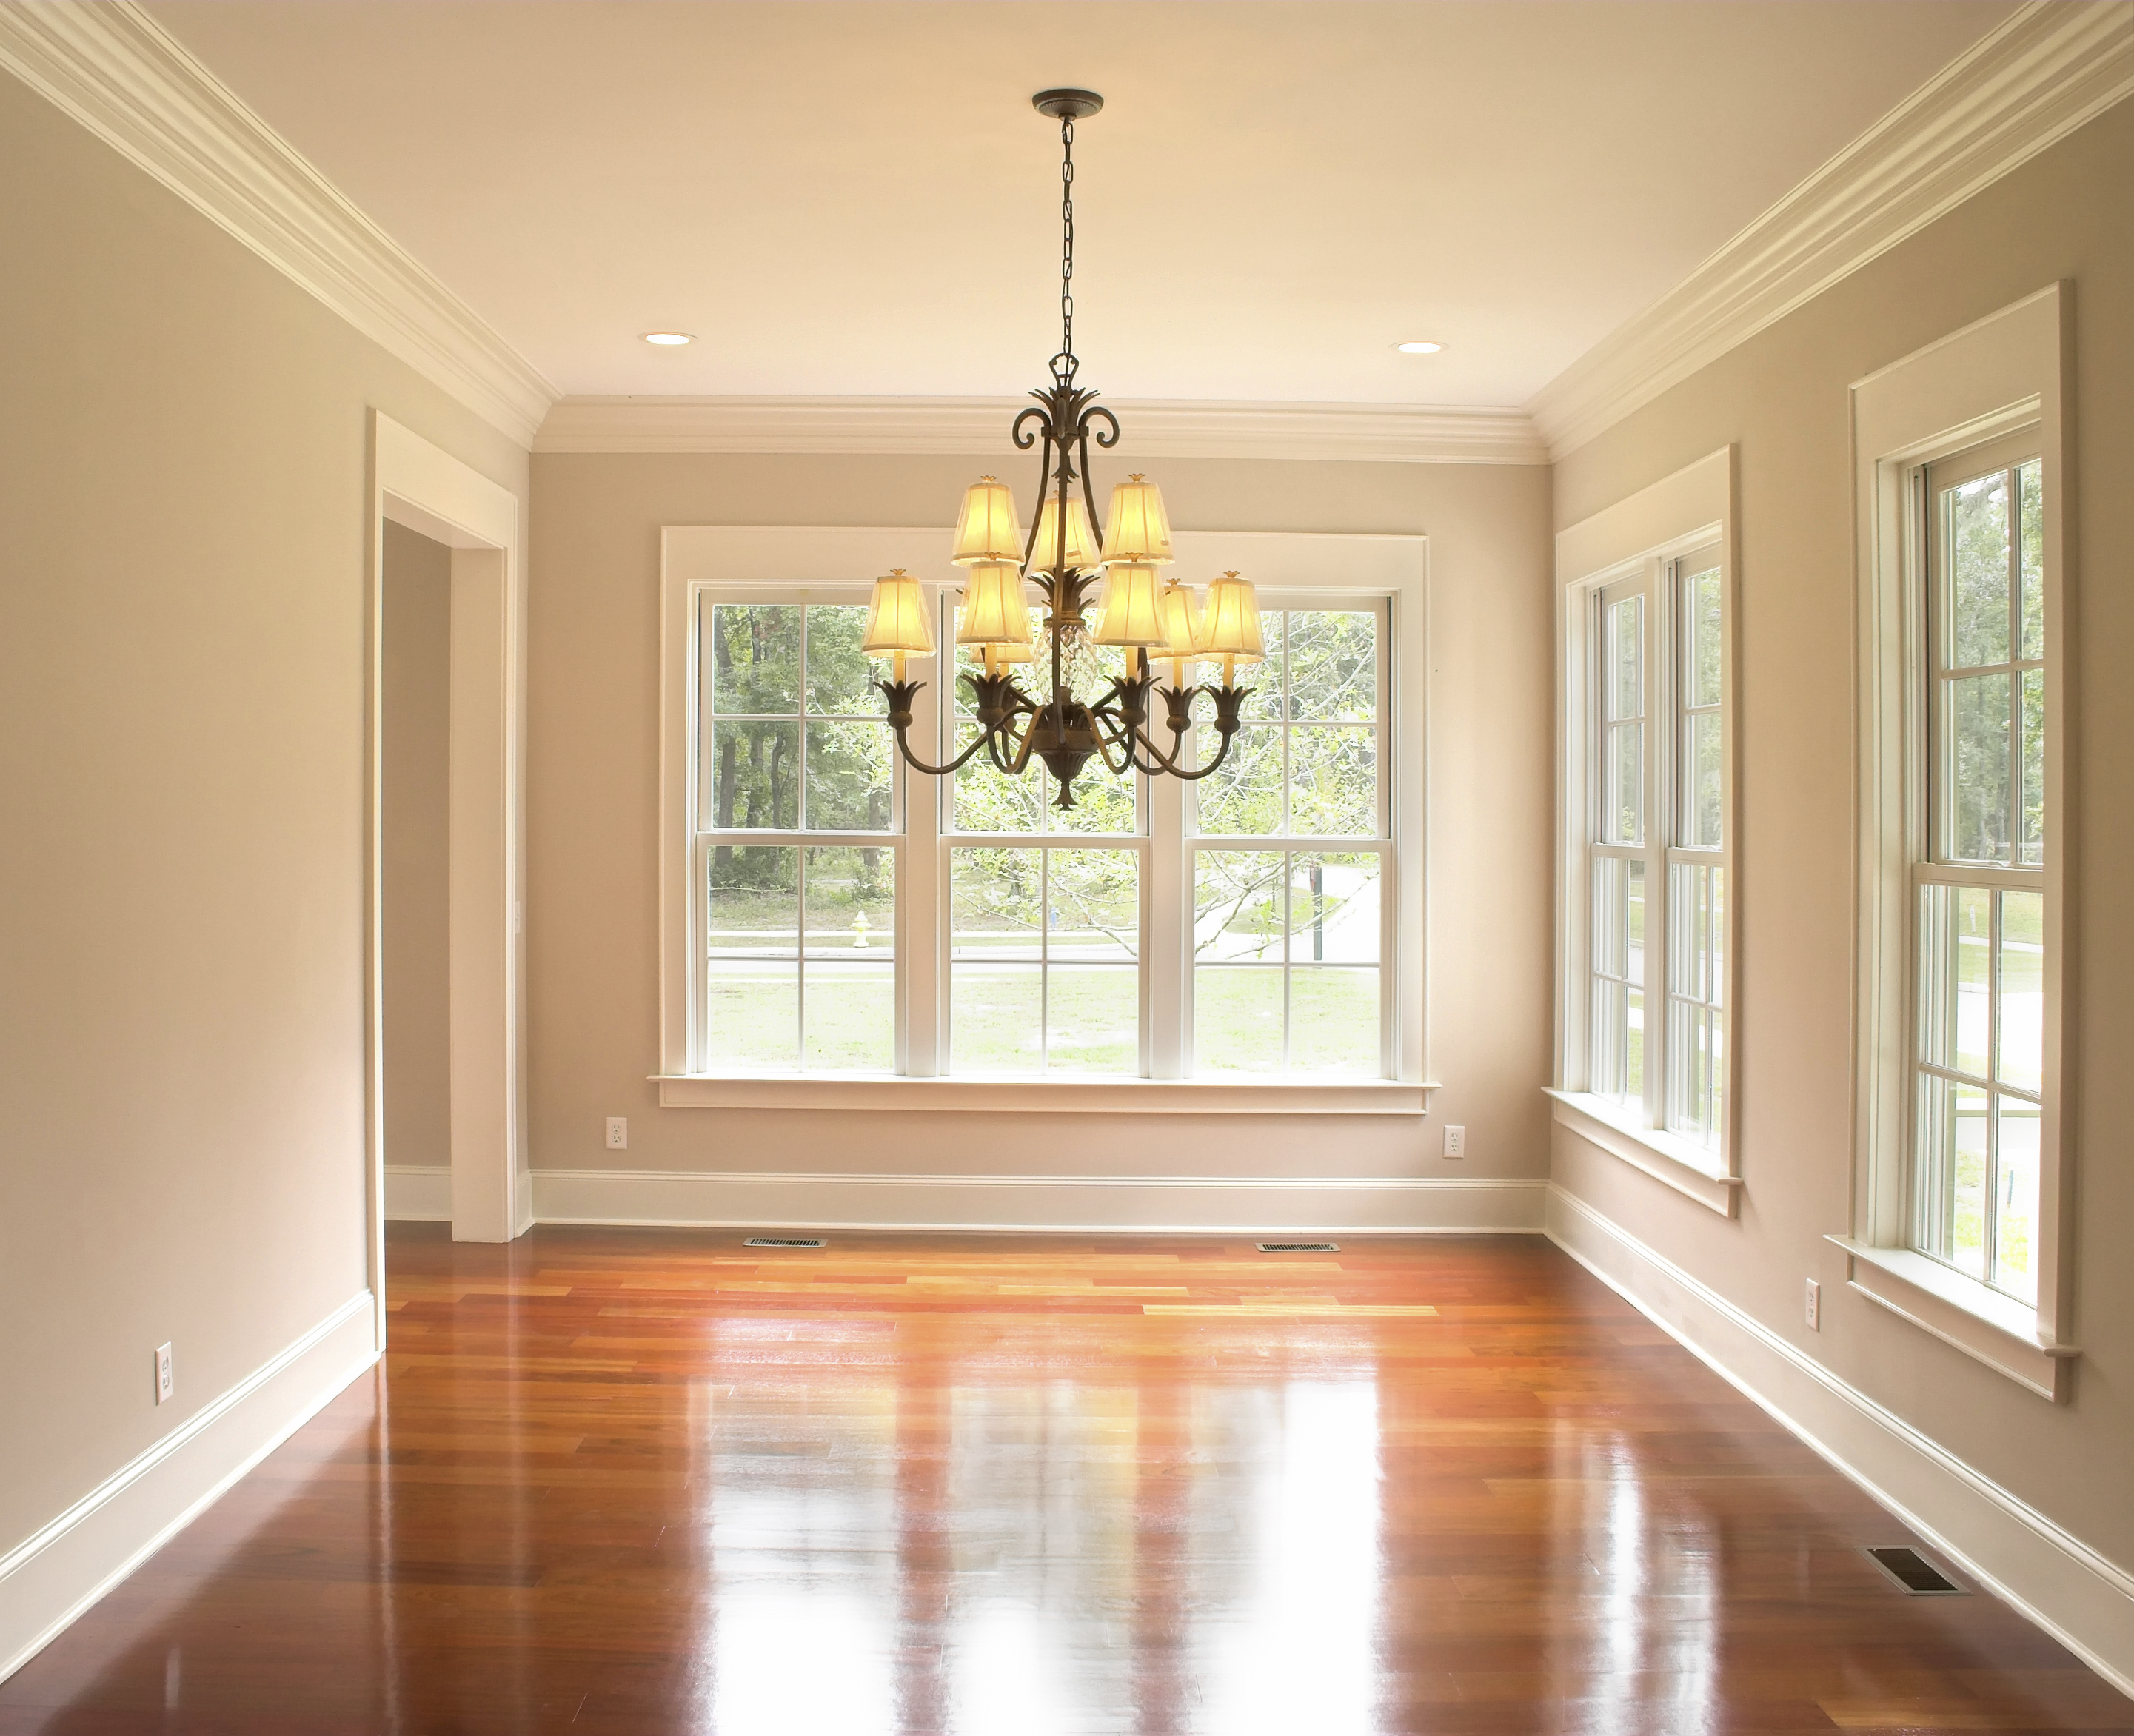 3 Crown Molding Ideas That Add Value To Your Home